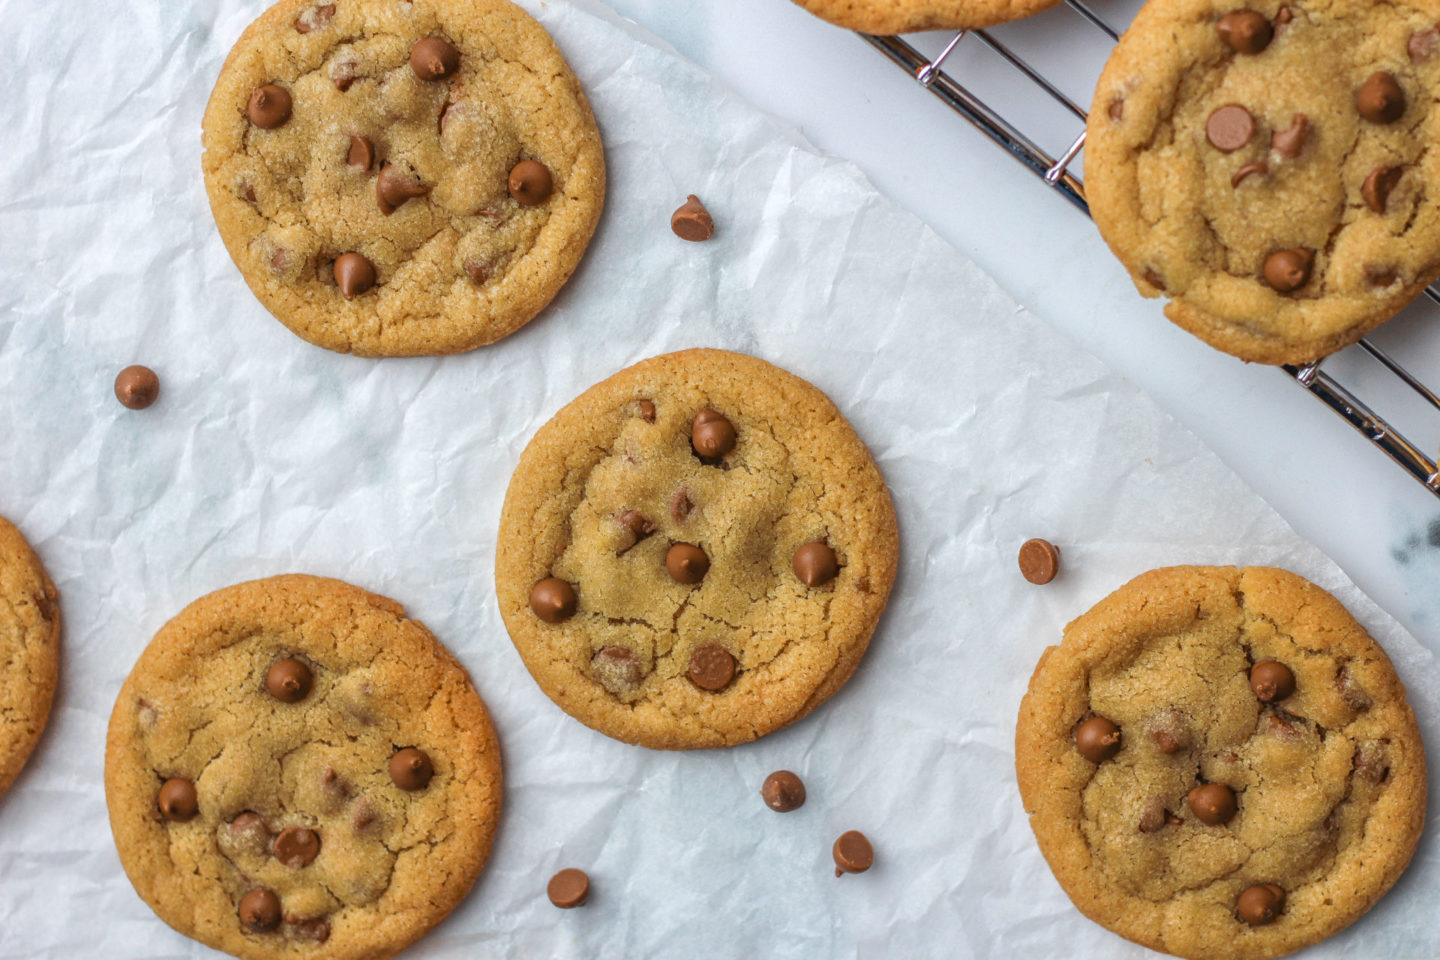 Several chewy chocolate chip cookies on parchment paper on a work surface